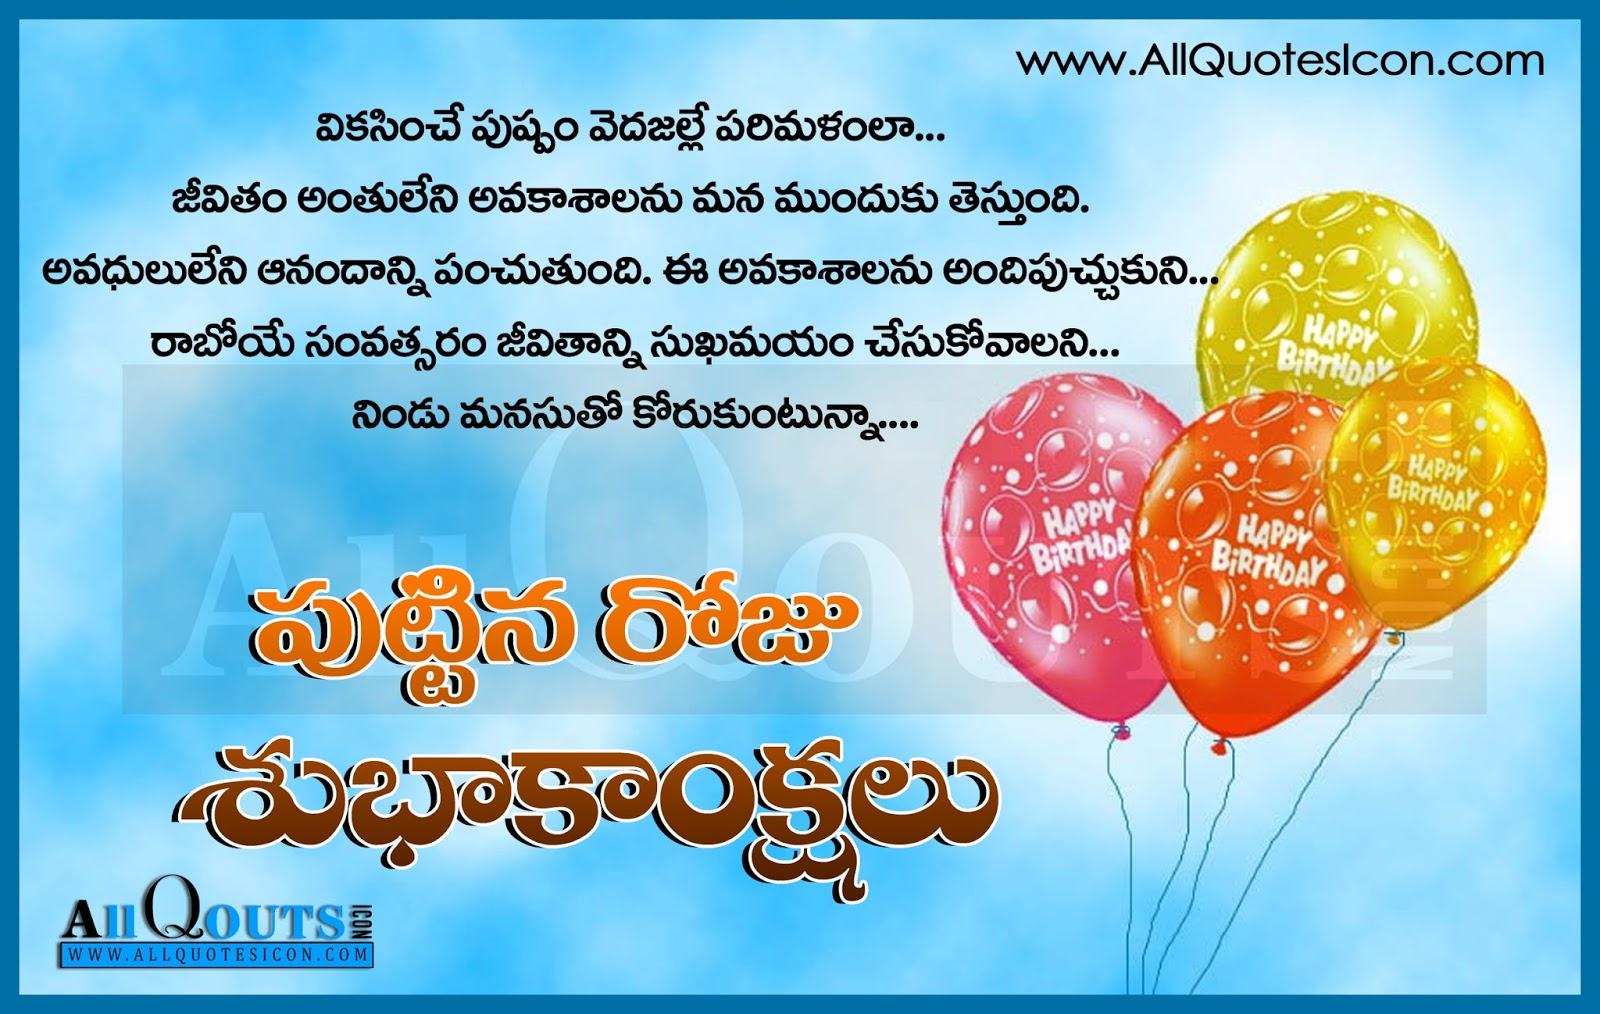 Birthday quotes greetings in telugu hd wallpapers best thoughts and happy birthday telugu quotes images pictures wallpapers photos m4hsunfo